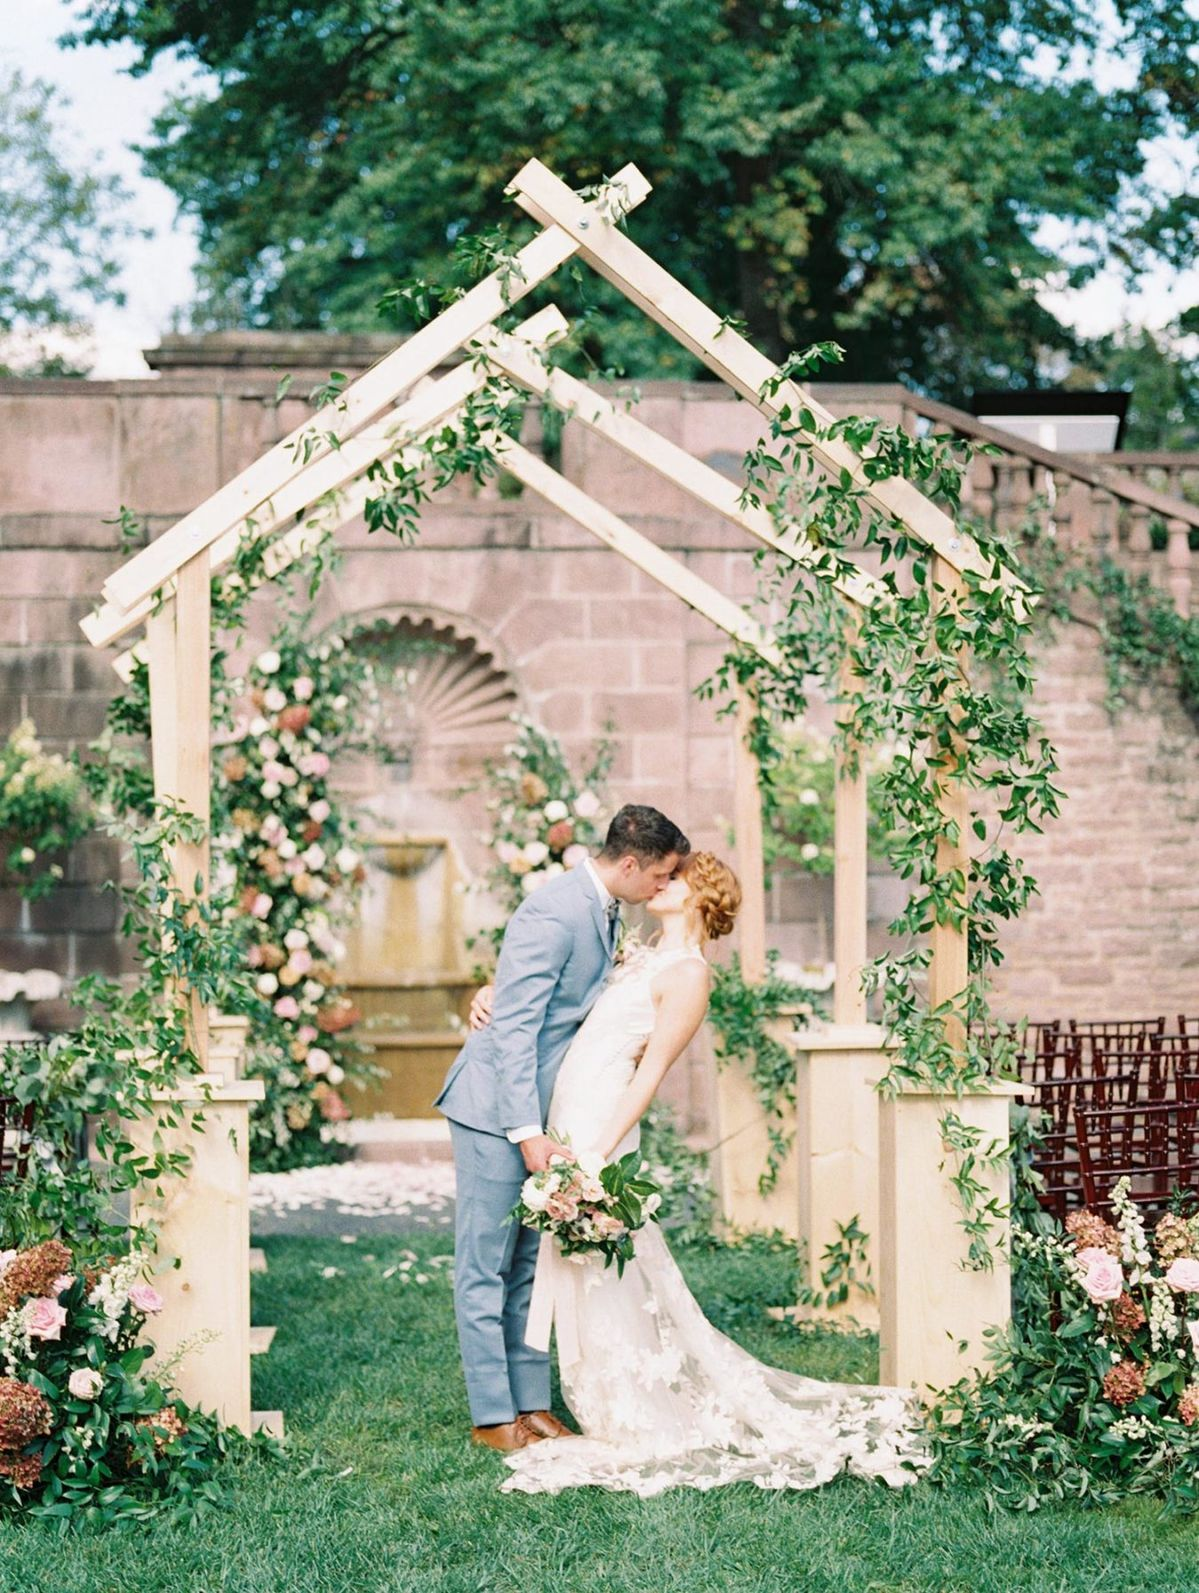 Is this elegant garden wedding in France or Philadelphia? We are hopelessly devoted to summer to autumn color palette in the curvy floral pillars, the French dessert cart and the custom aisle arch structure featuring climbing greenery! Floral inspiration abounds in every inch of this outdoor bridal inspo from our latest Styled Social and we cannot wait to share all the beauty with you on #ruffledblog!